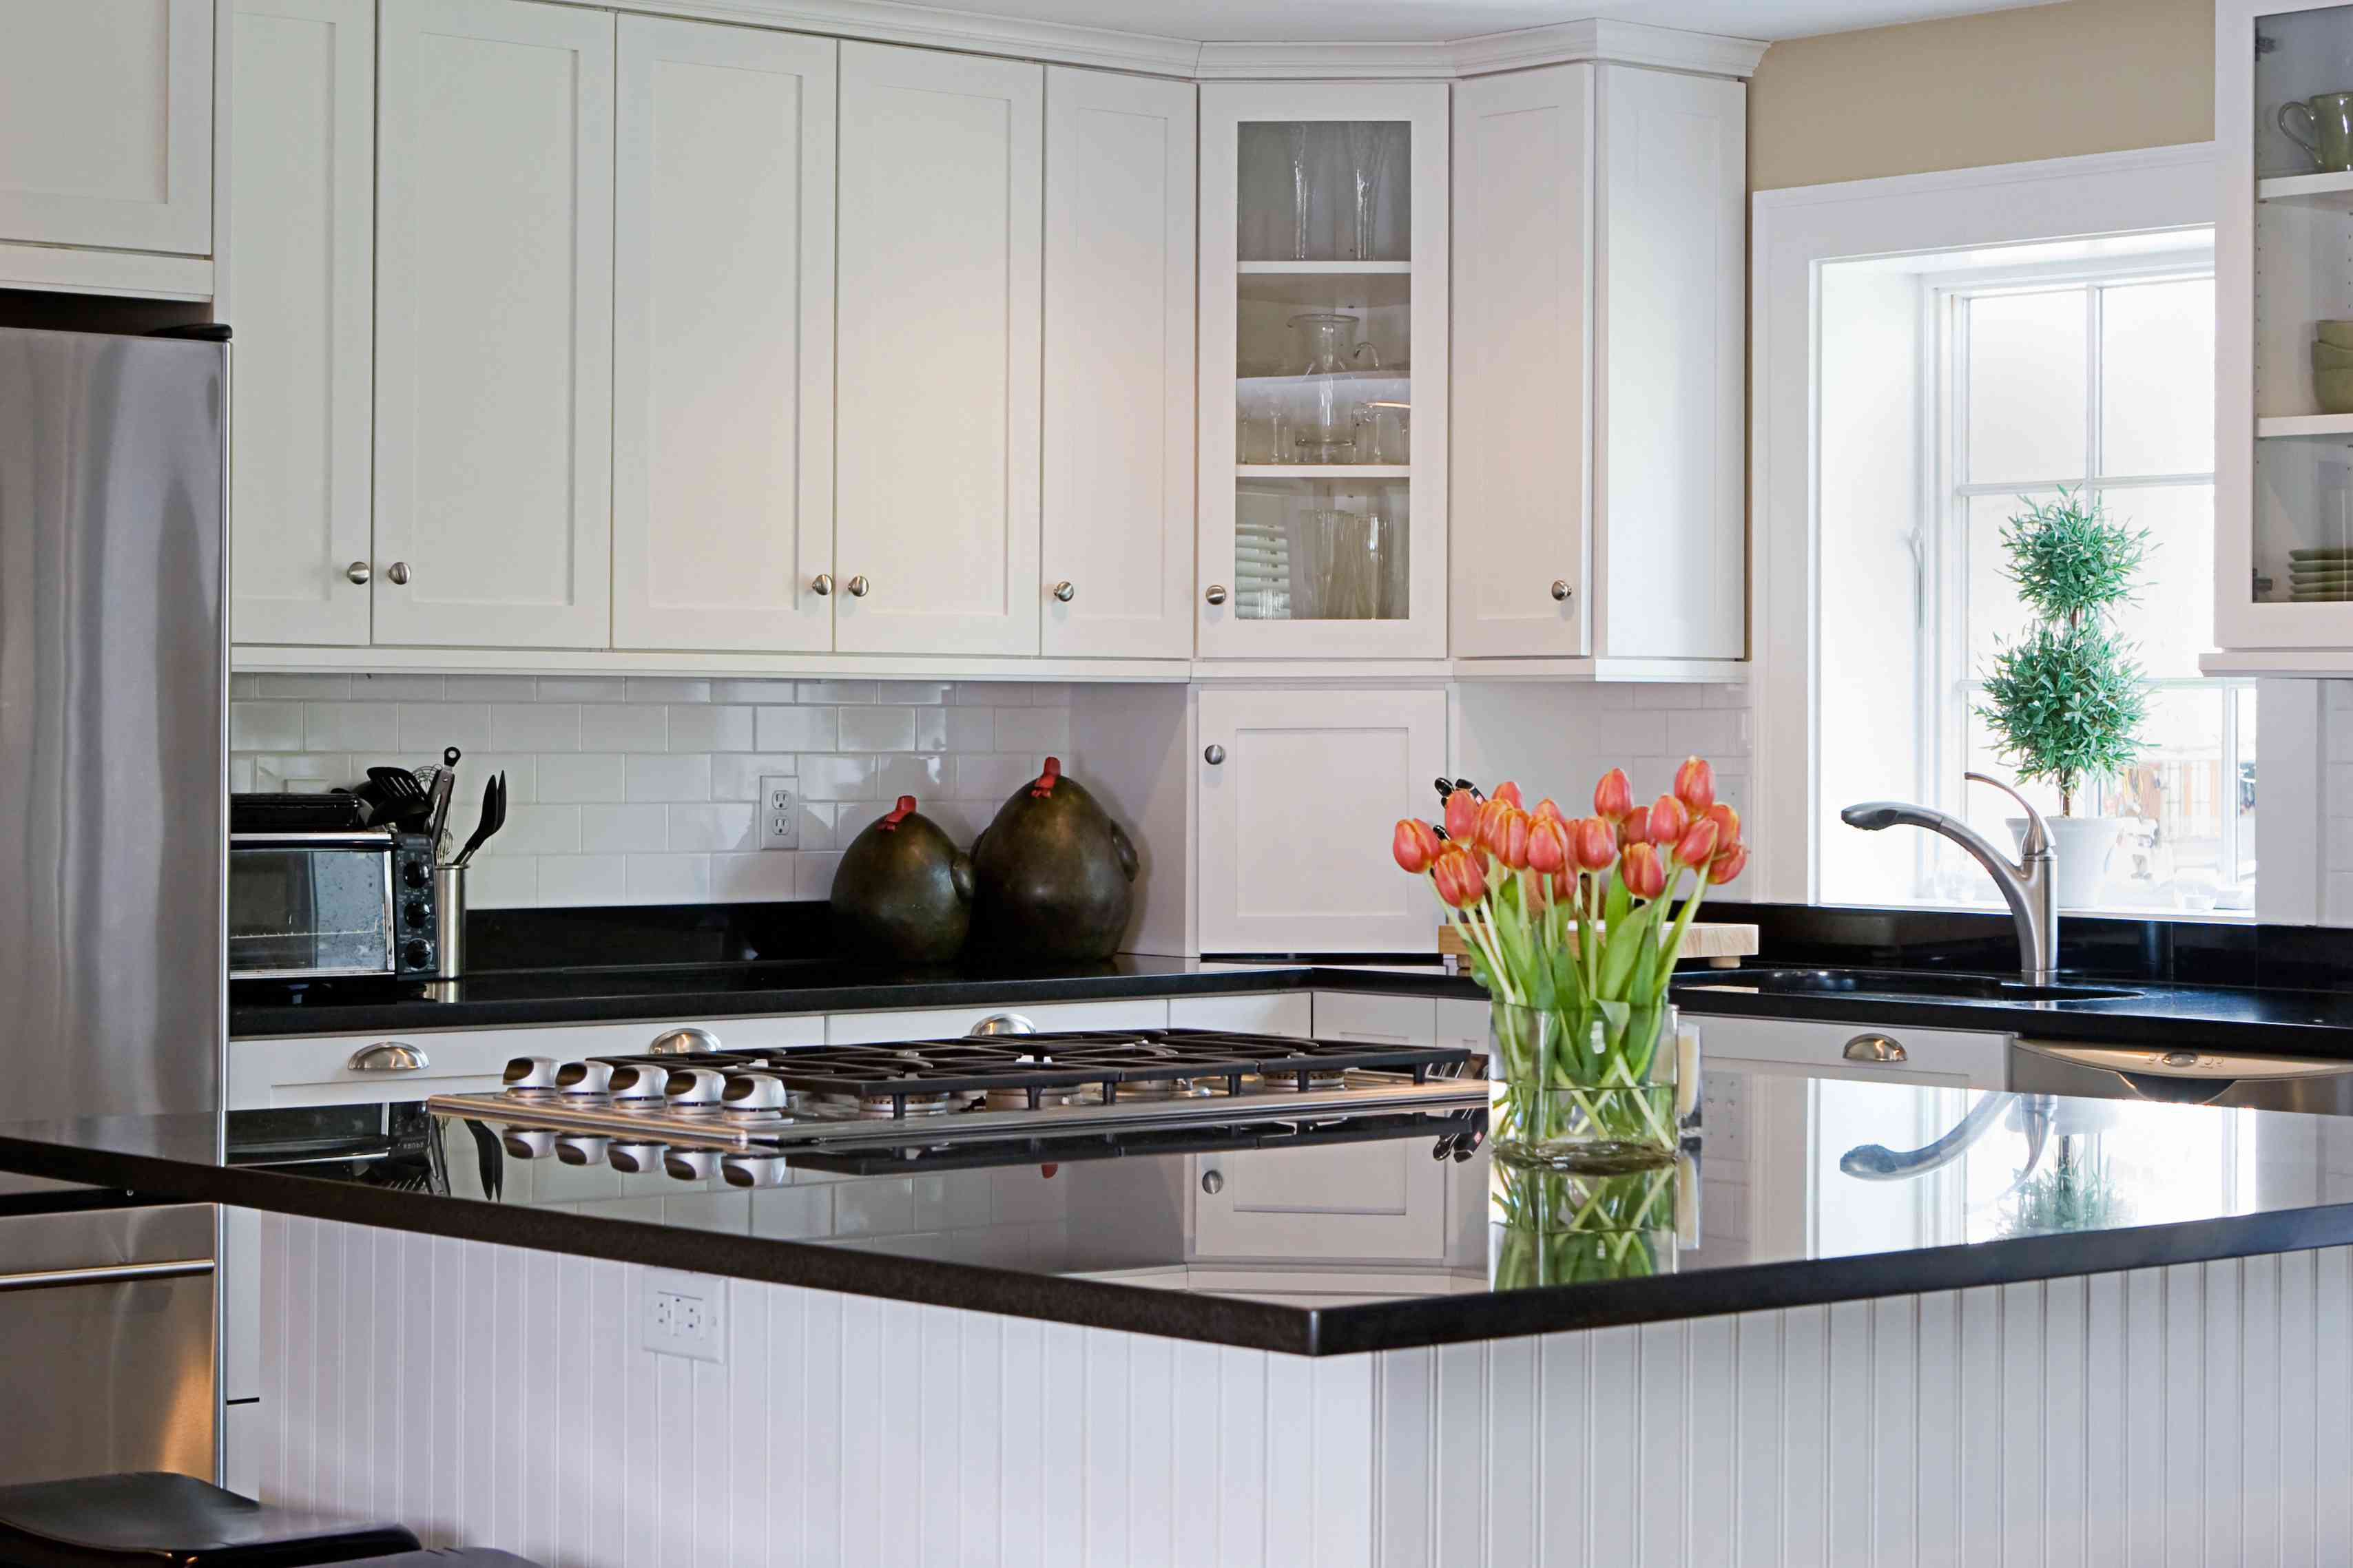 Well-lit kitchen with black granite countertop